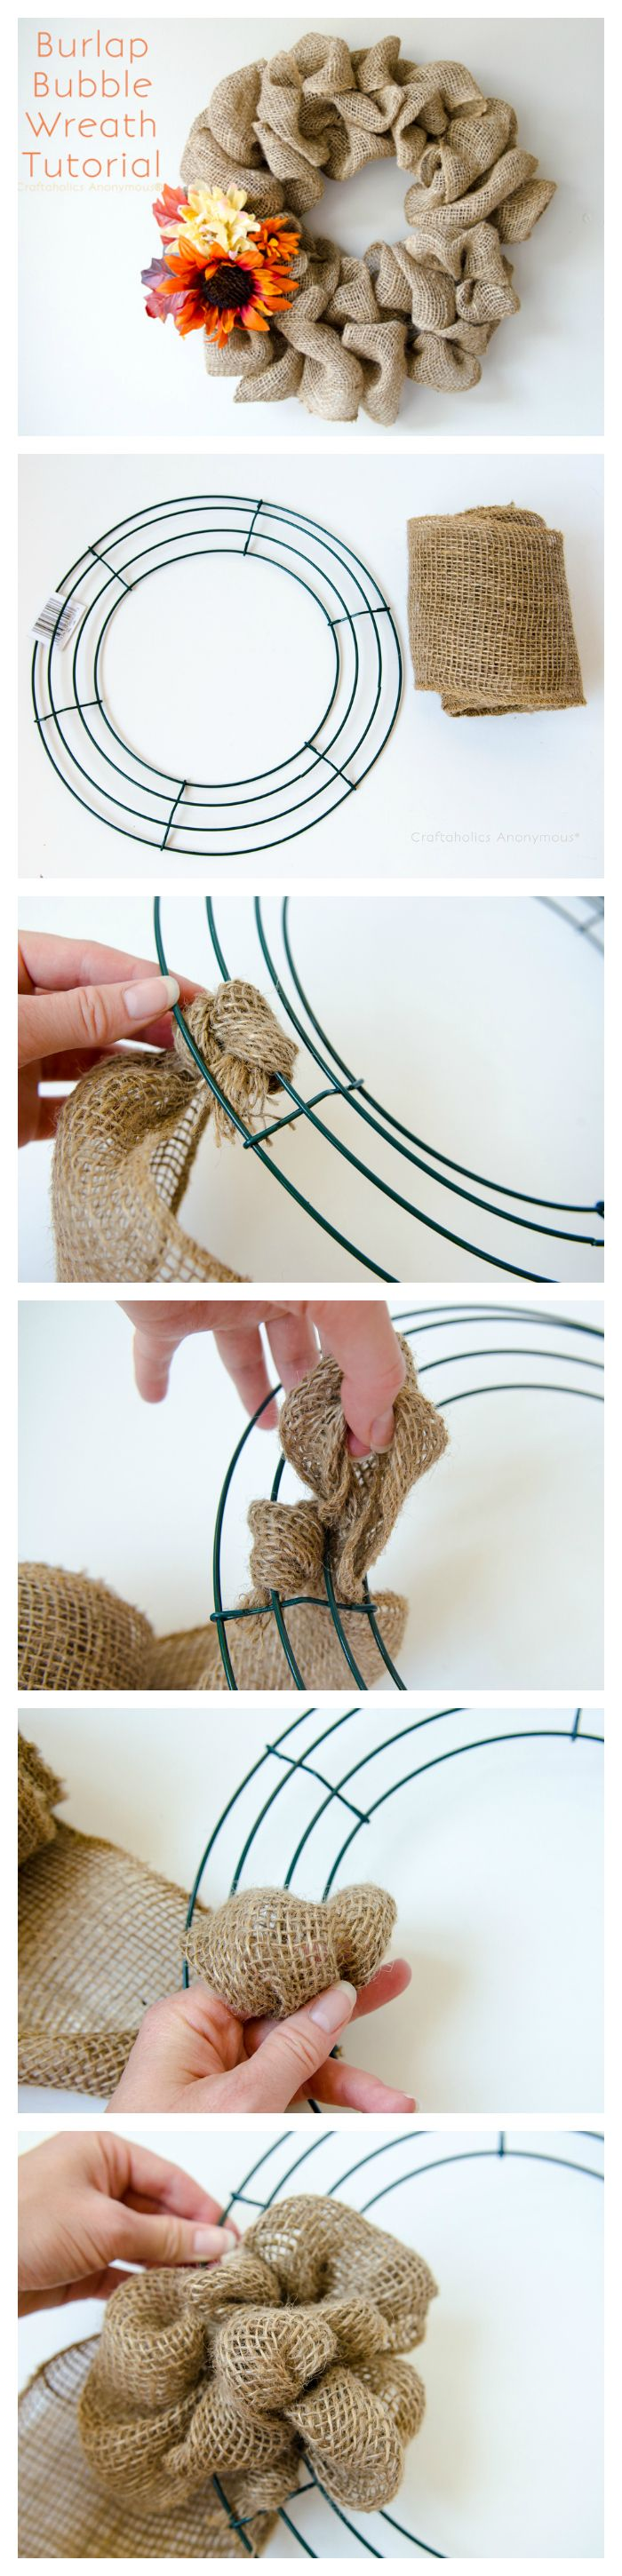 How to make a Burlap Bubble Wreath #burlap #wreath